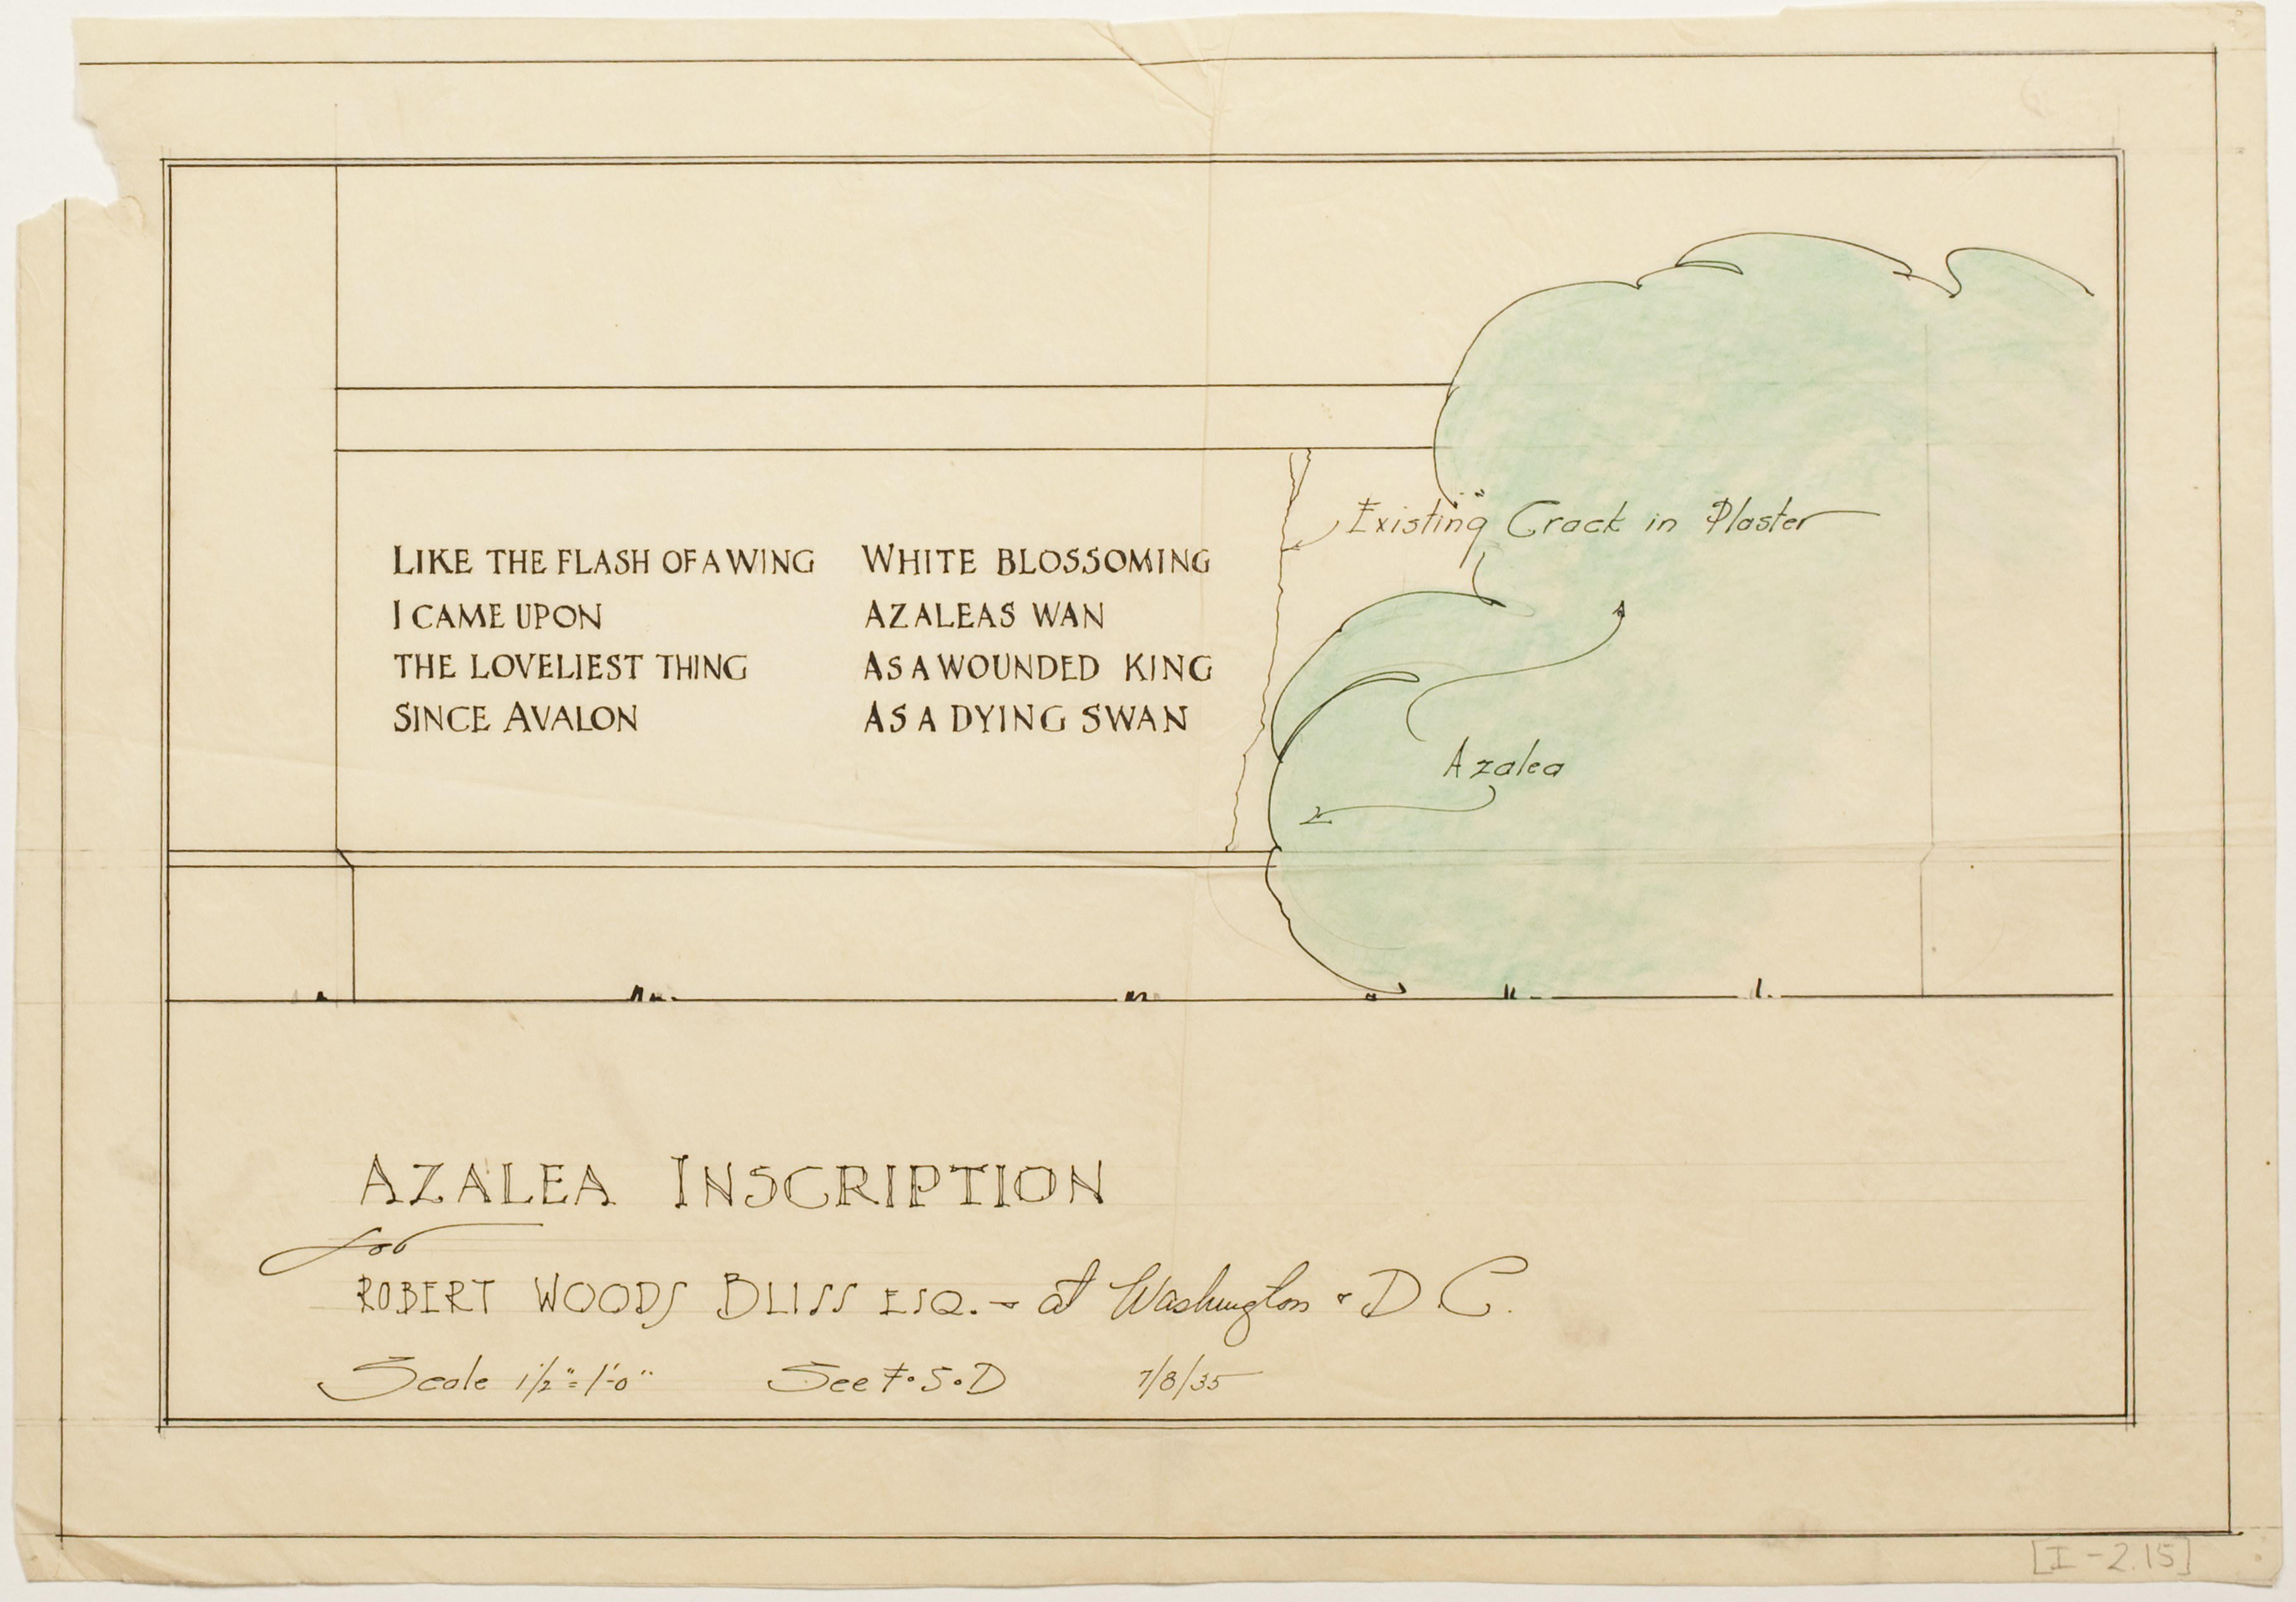 Azalea Inscription (Model for the Full Scale Drawing), Garden Archives, GD I-2-15.